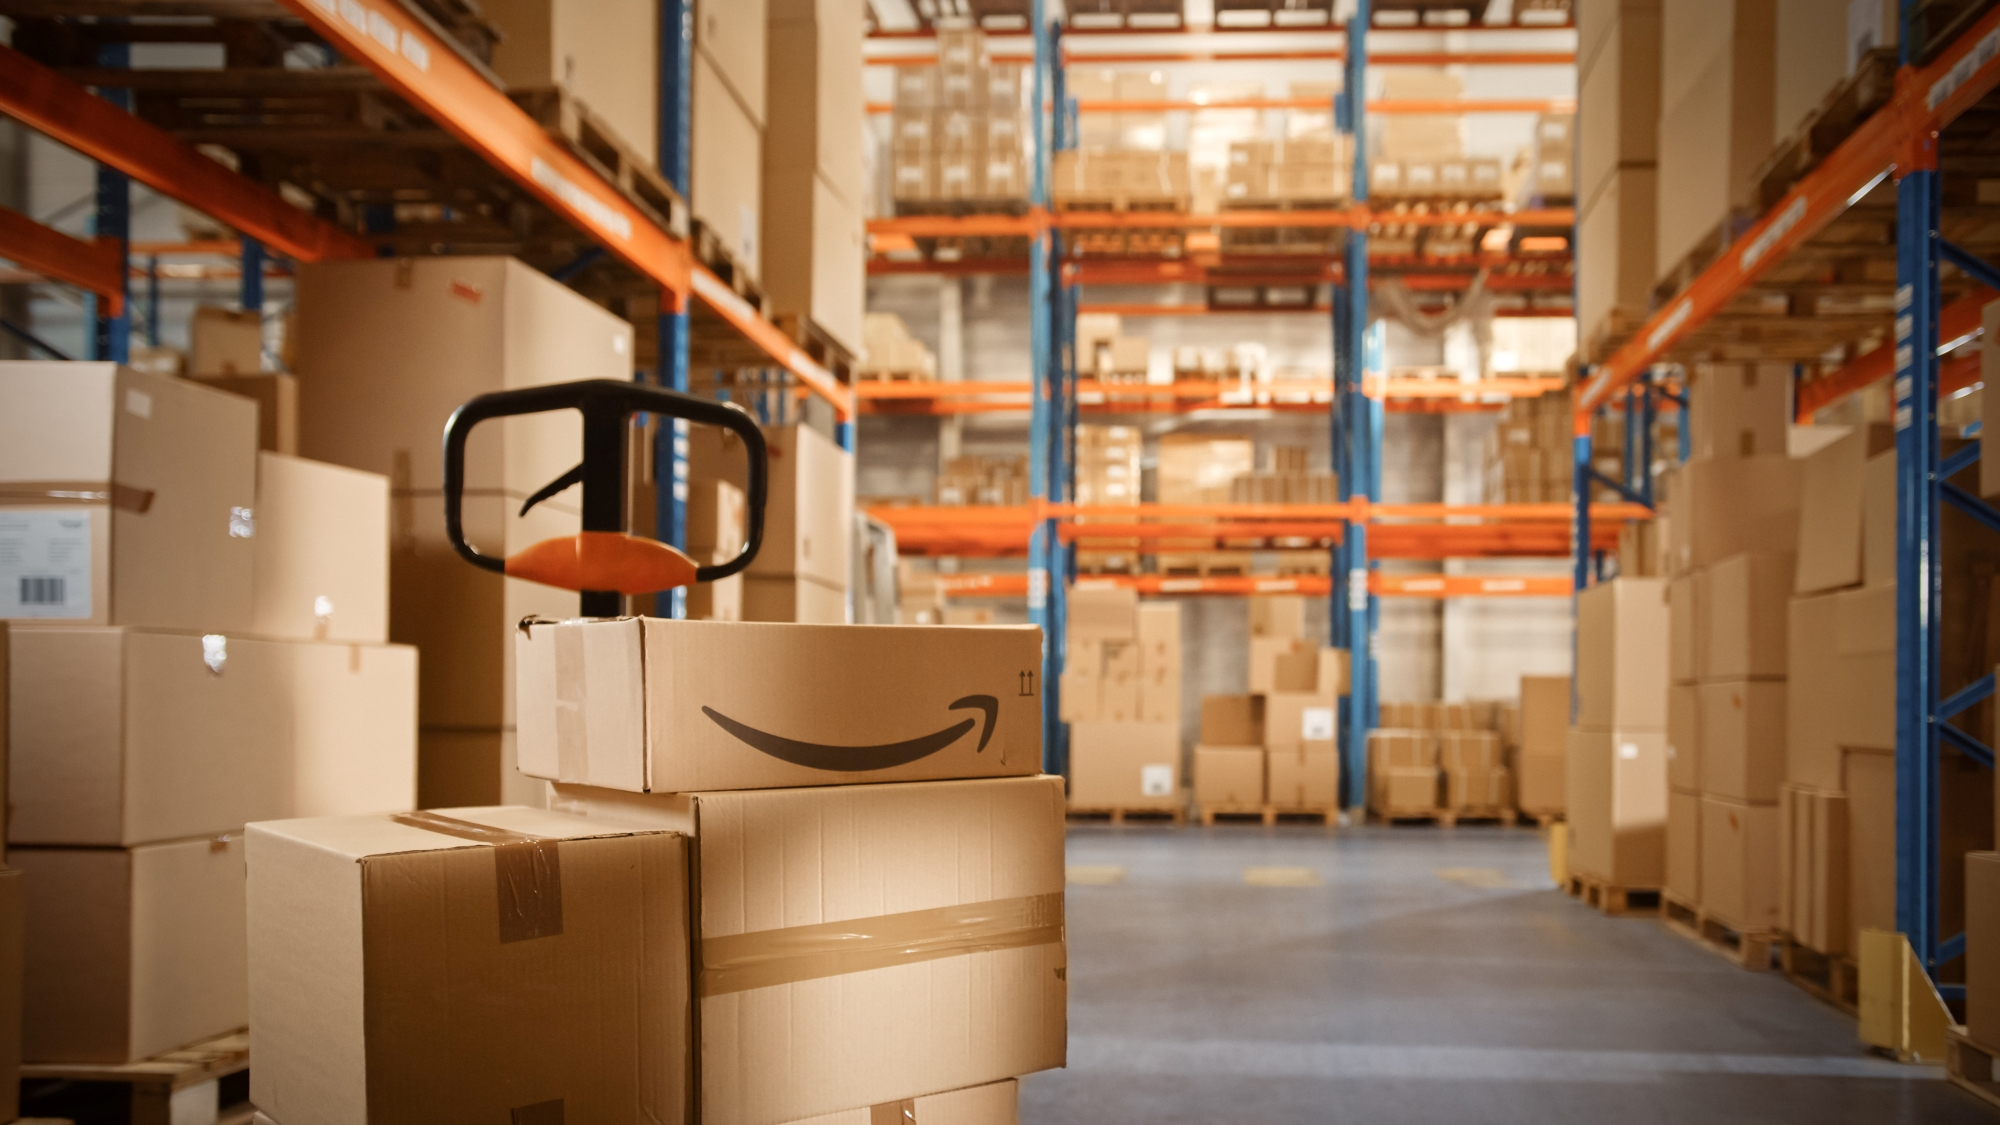 The amazon packaging warehouse is filled with products ready to be shipped by various FBA businesses